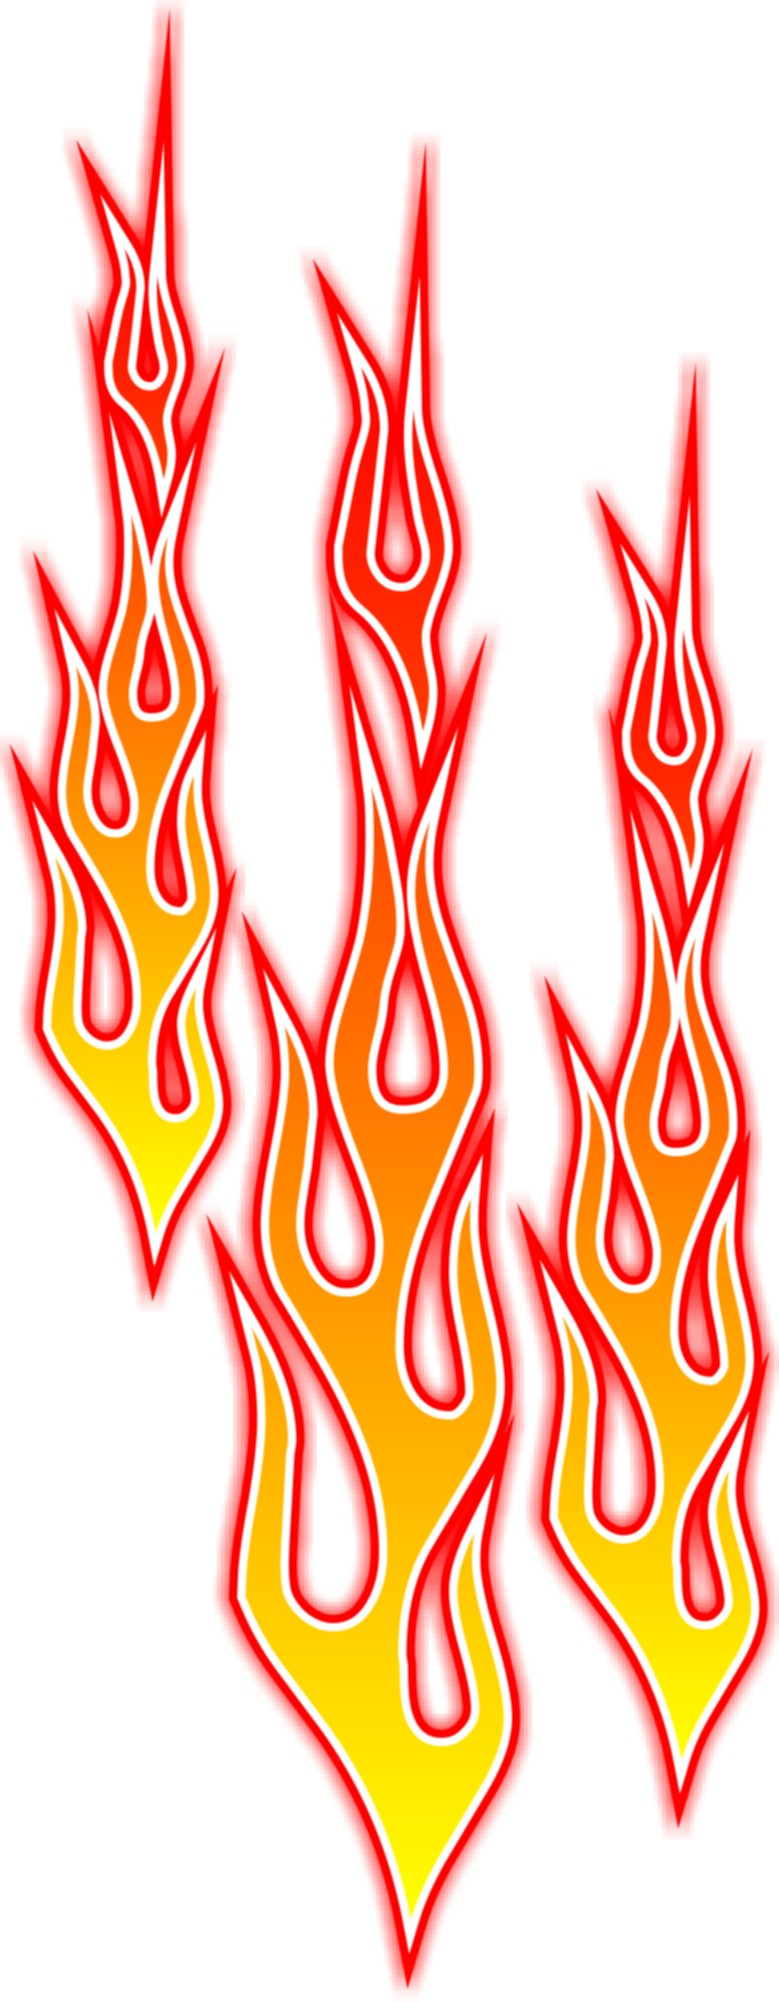 hight resolution of flames free flame clipart the cliparts